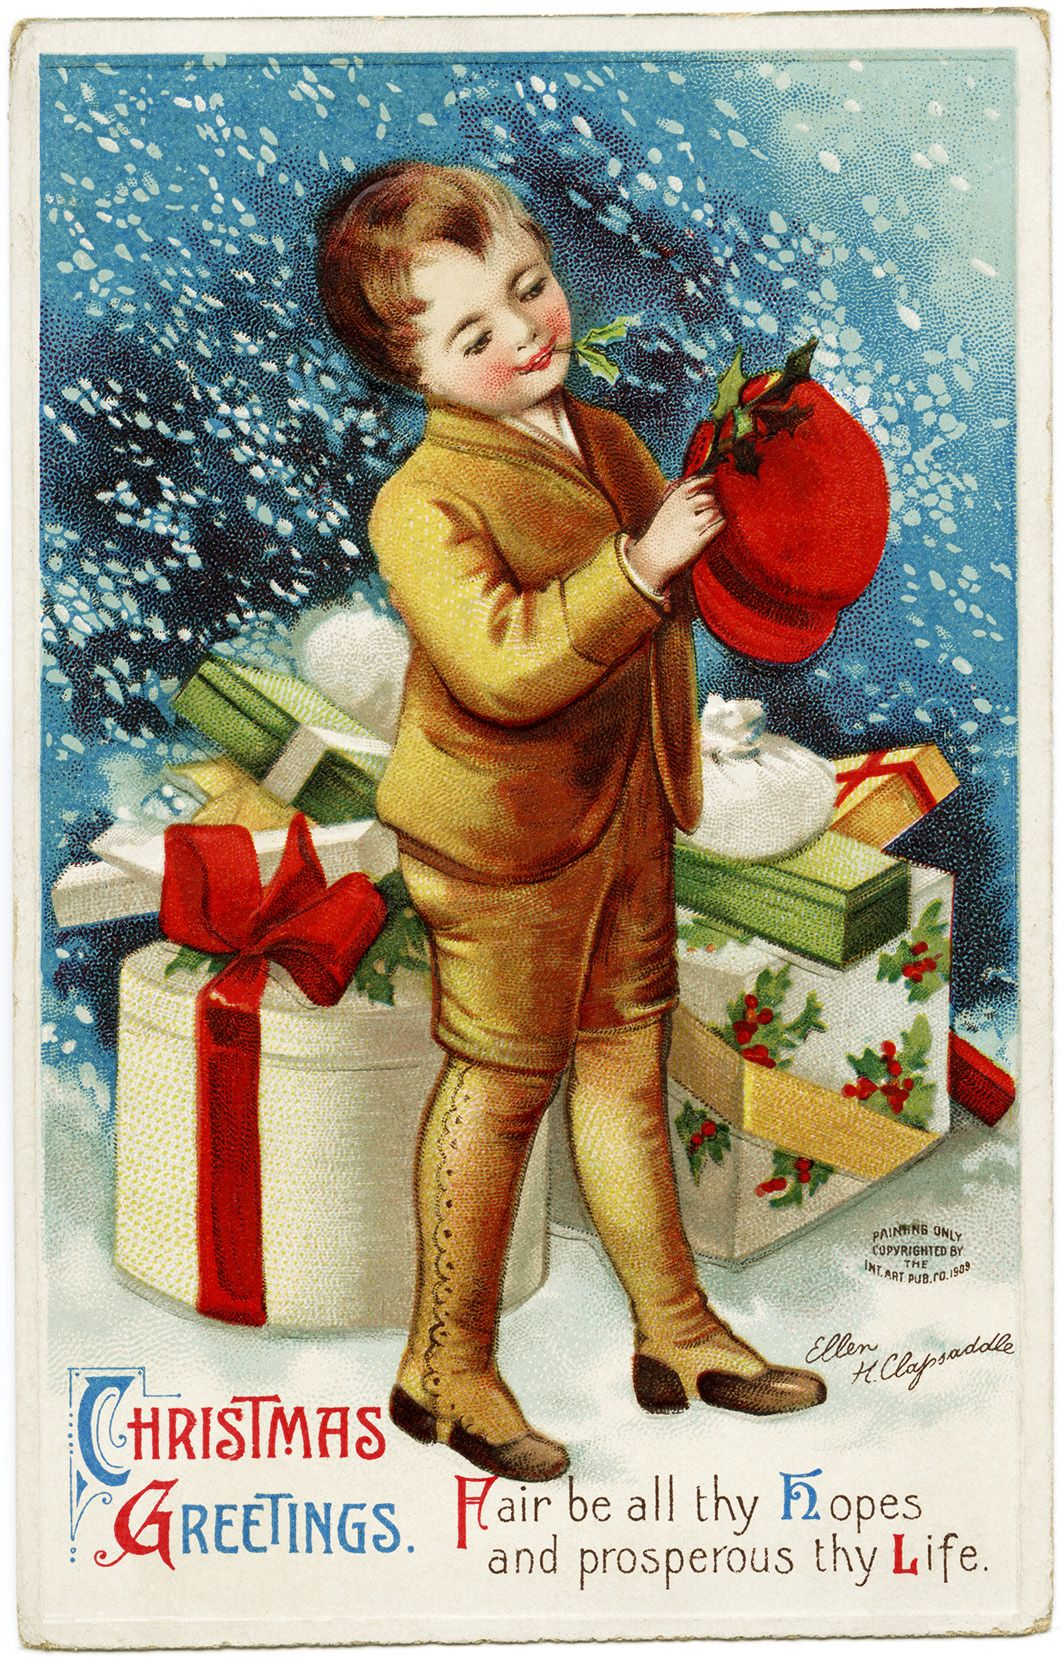 Old fashioned christmas clip art image antique holiday ellen clapsaddle christmas postcard vintage christmas card old fashioned christmas image antique holiday printable victorian christmas clip art kristyandbryce Image collections